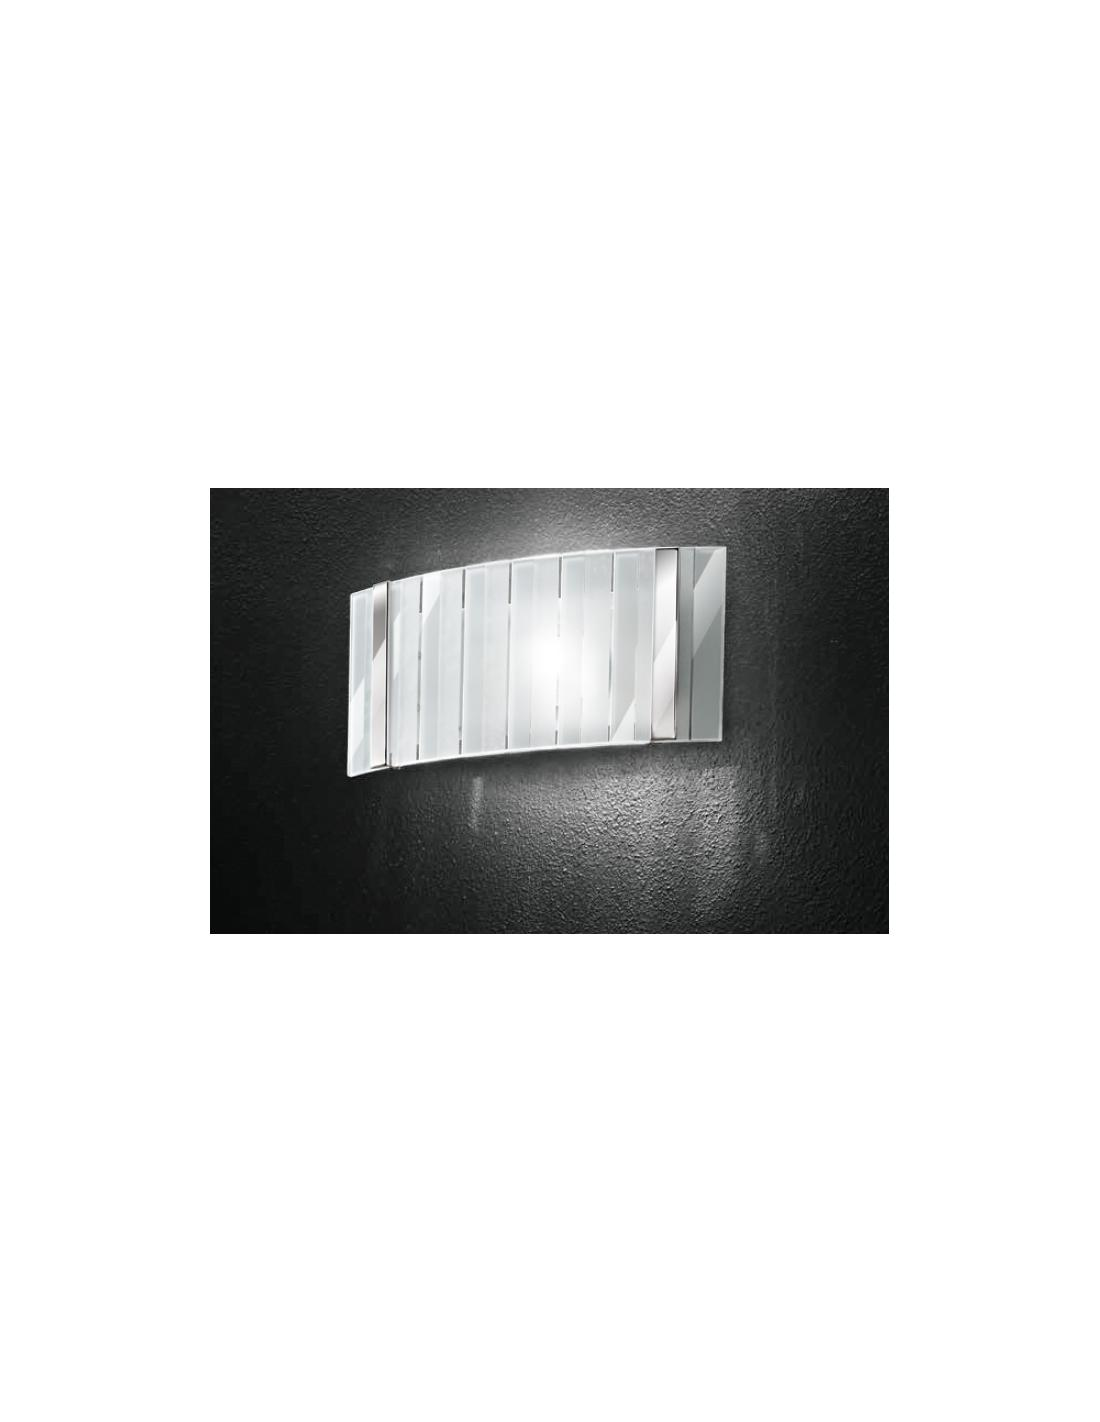 Transparent glass wall 28 images transparent icon for Transparent glass wall